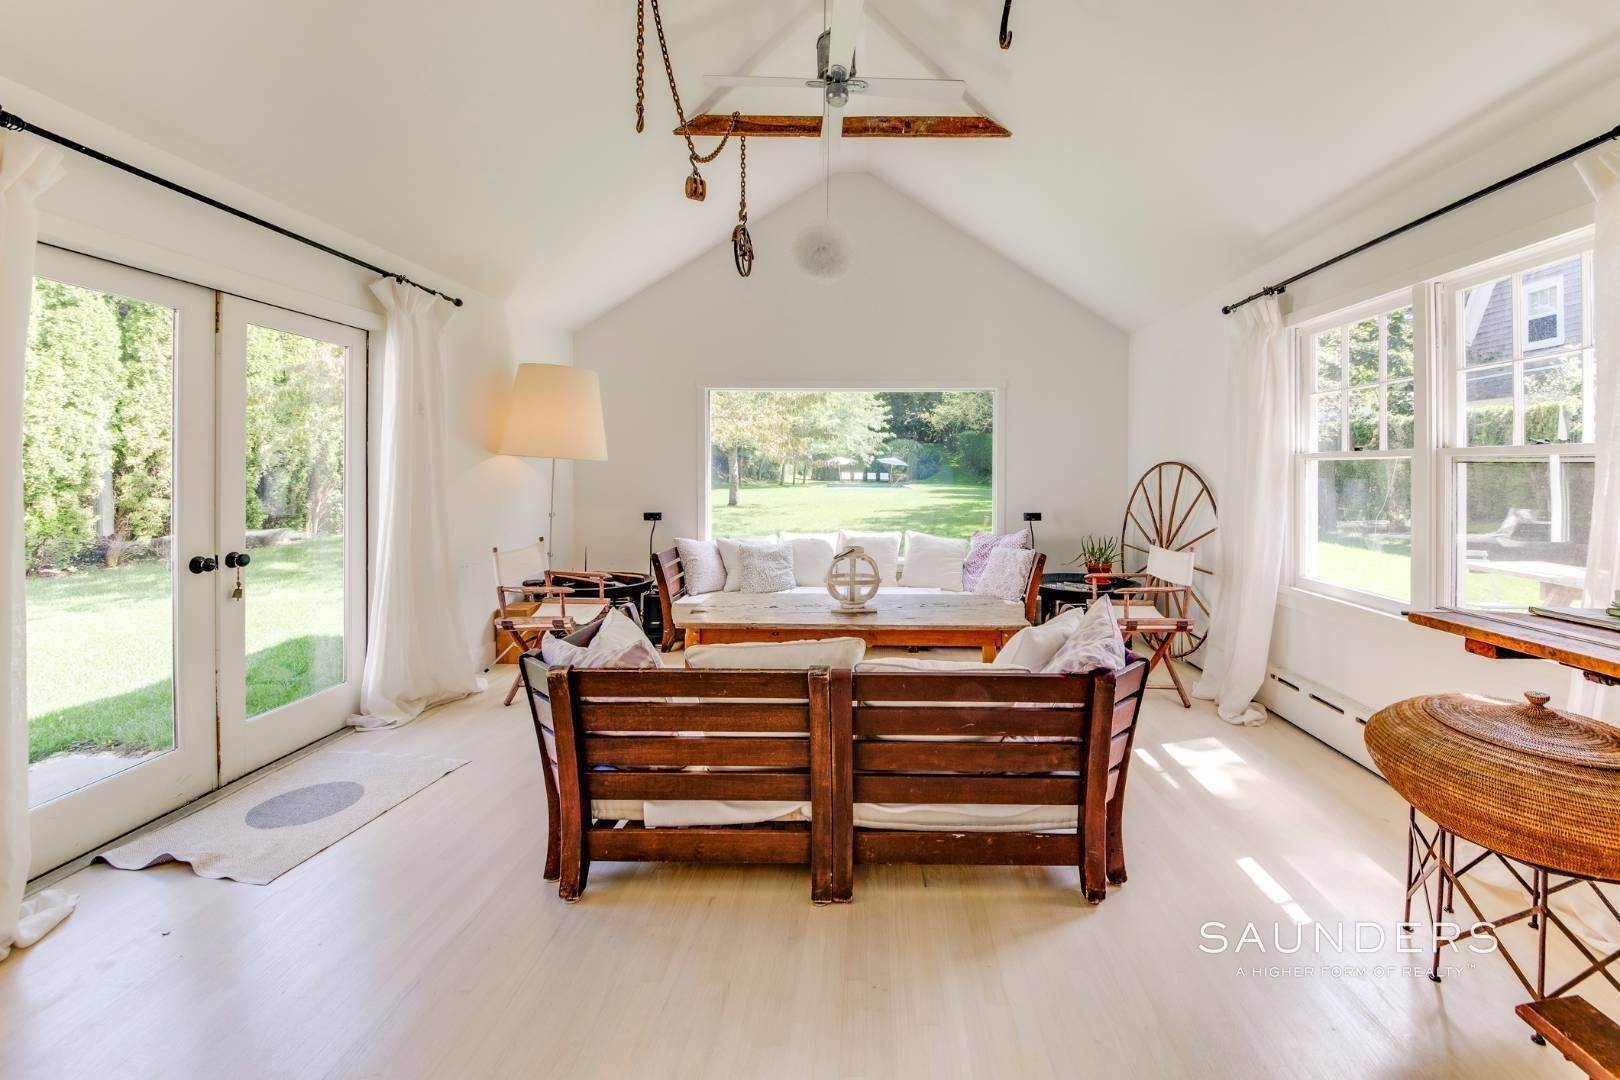 Single Family Homes for Sale at South Of Highway - Turnkey Charmer 136 Cove Hollow Road, East Hampton, East Hampton Town, NY 11937